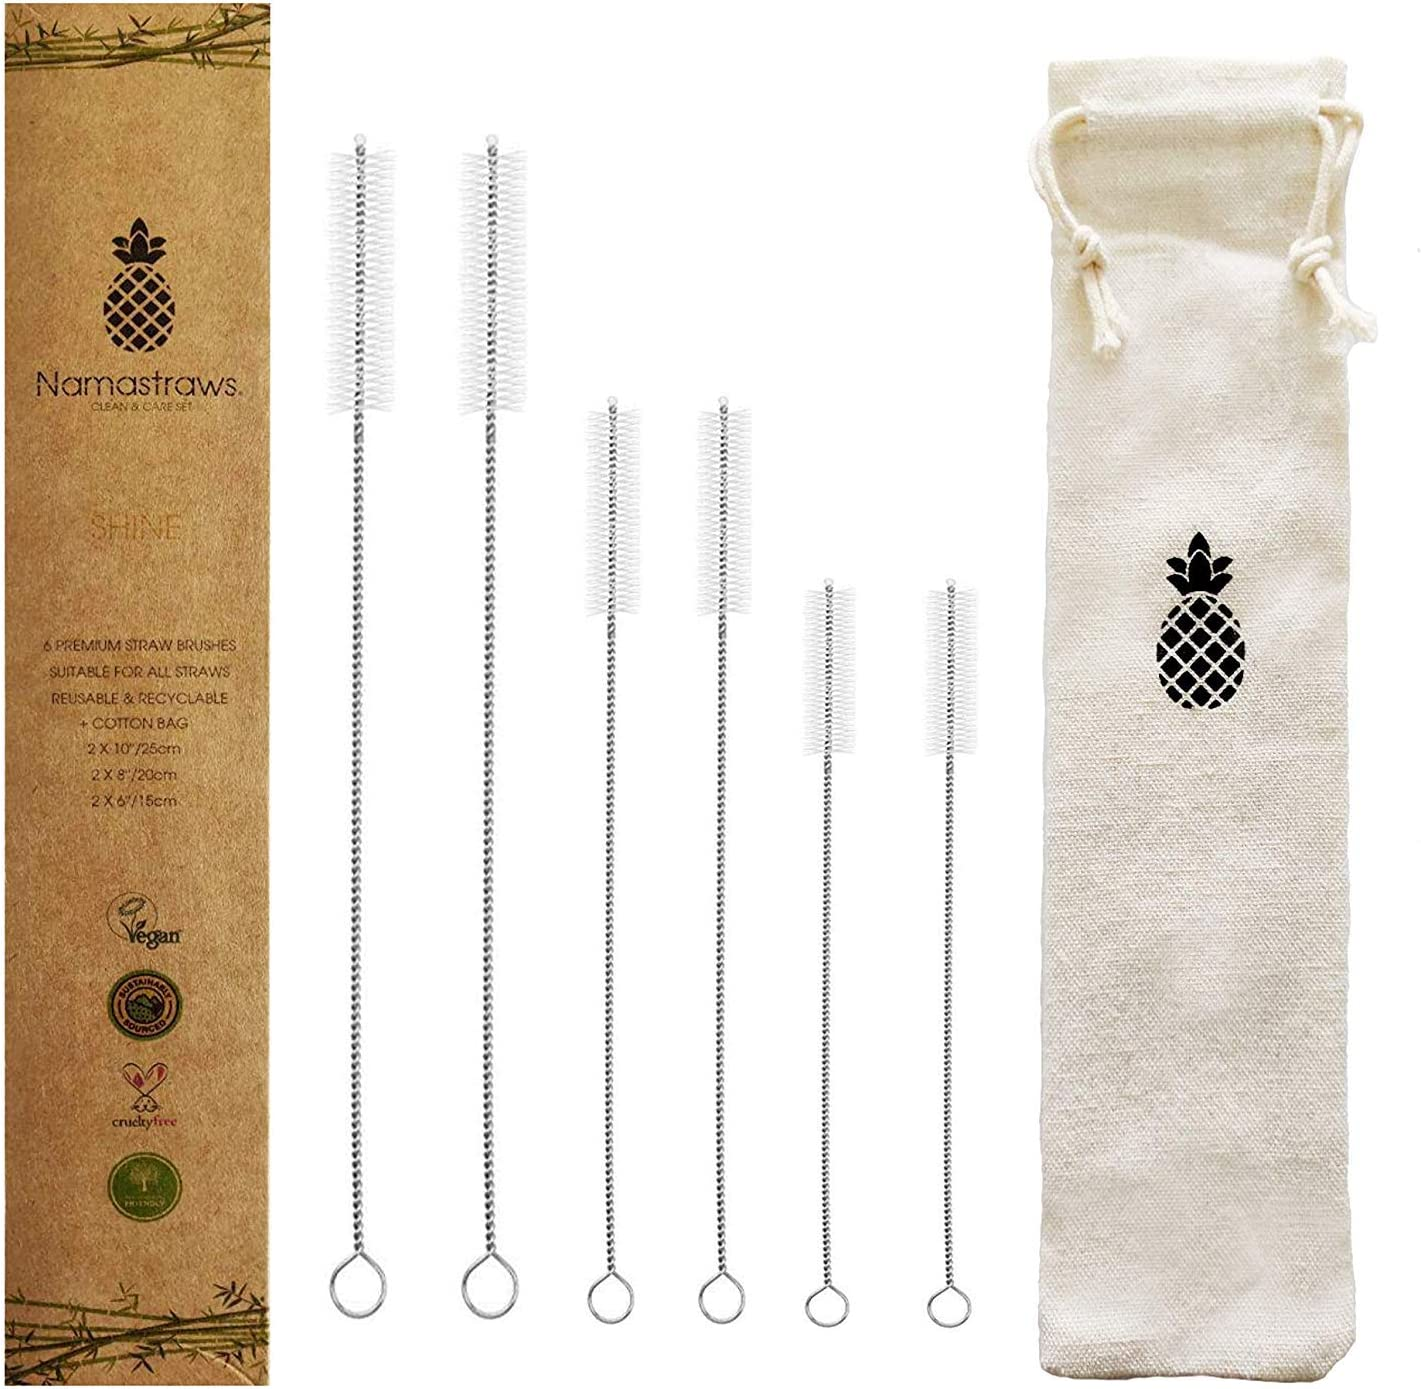 Drinking Straw Cleaning Brush Set - Long Pipe Cleaners - 3 Sizes 6'' 8'' 10'' Suitable for All Straws - Tumbler, Sippy Cup, Water Bottle - Set of 6 Namastraws Shine